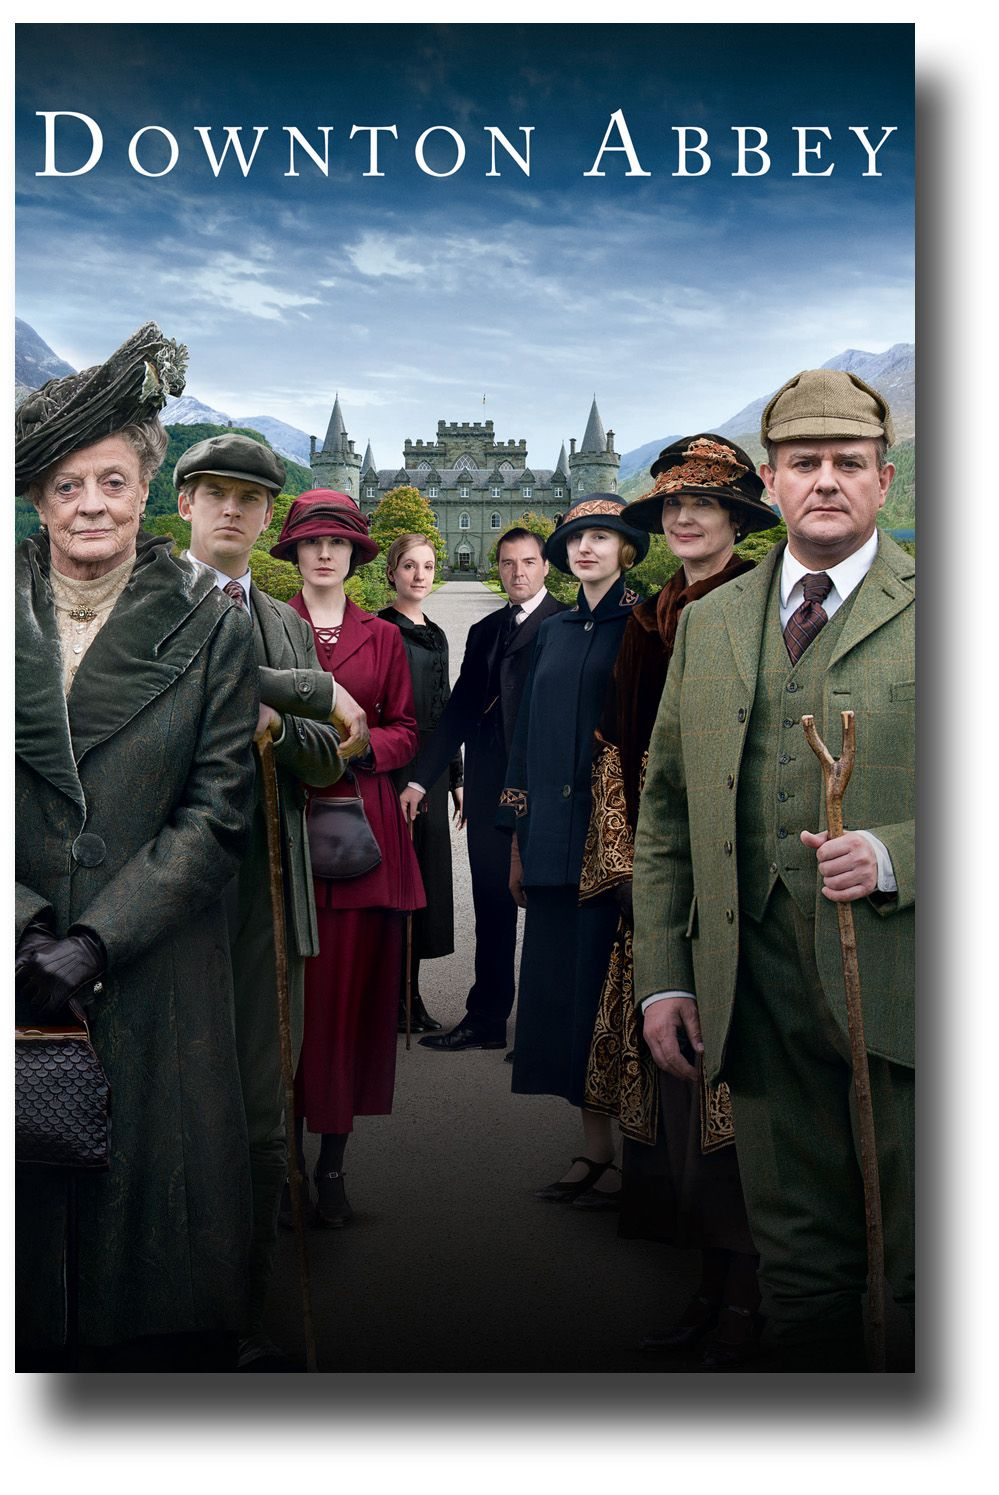 Downton Abbey Season 6 Is Now On Amazon Prime Downton Abbey